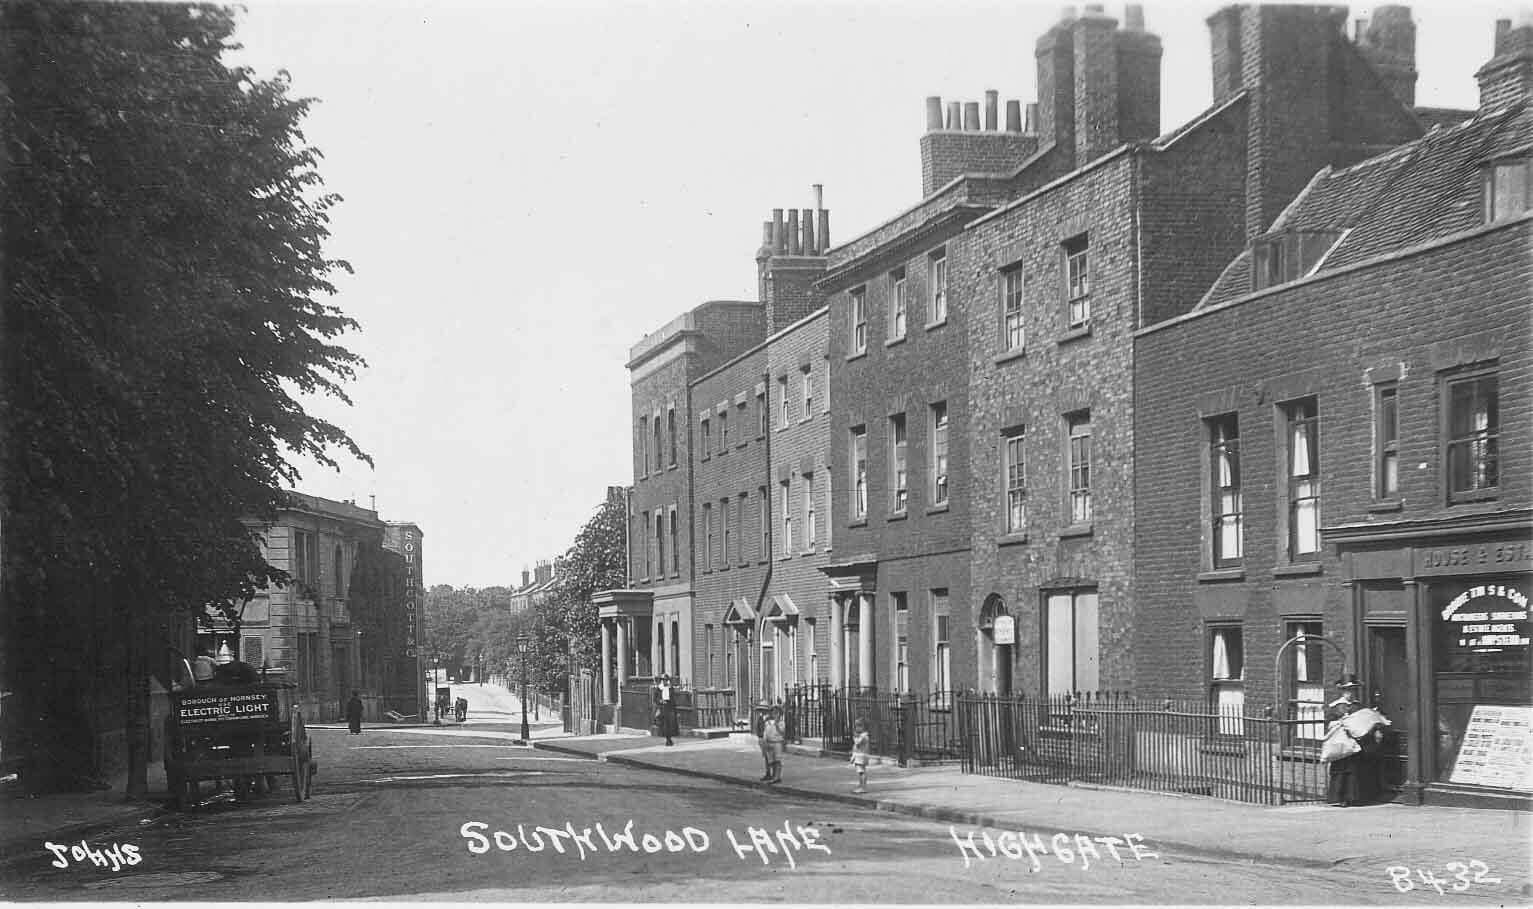 Postcard of Southwood Lane, Highgate